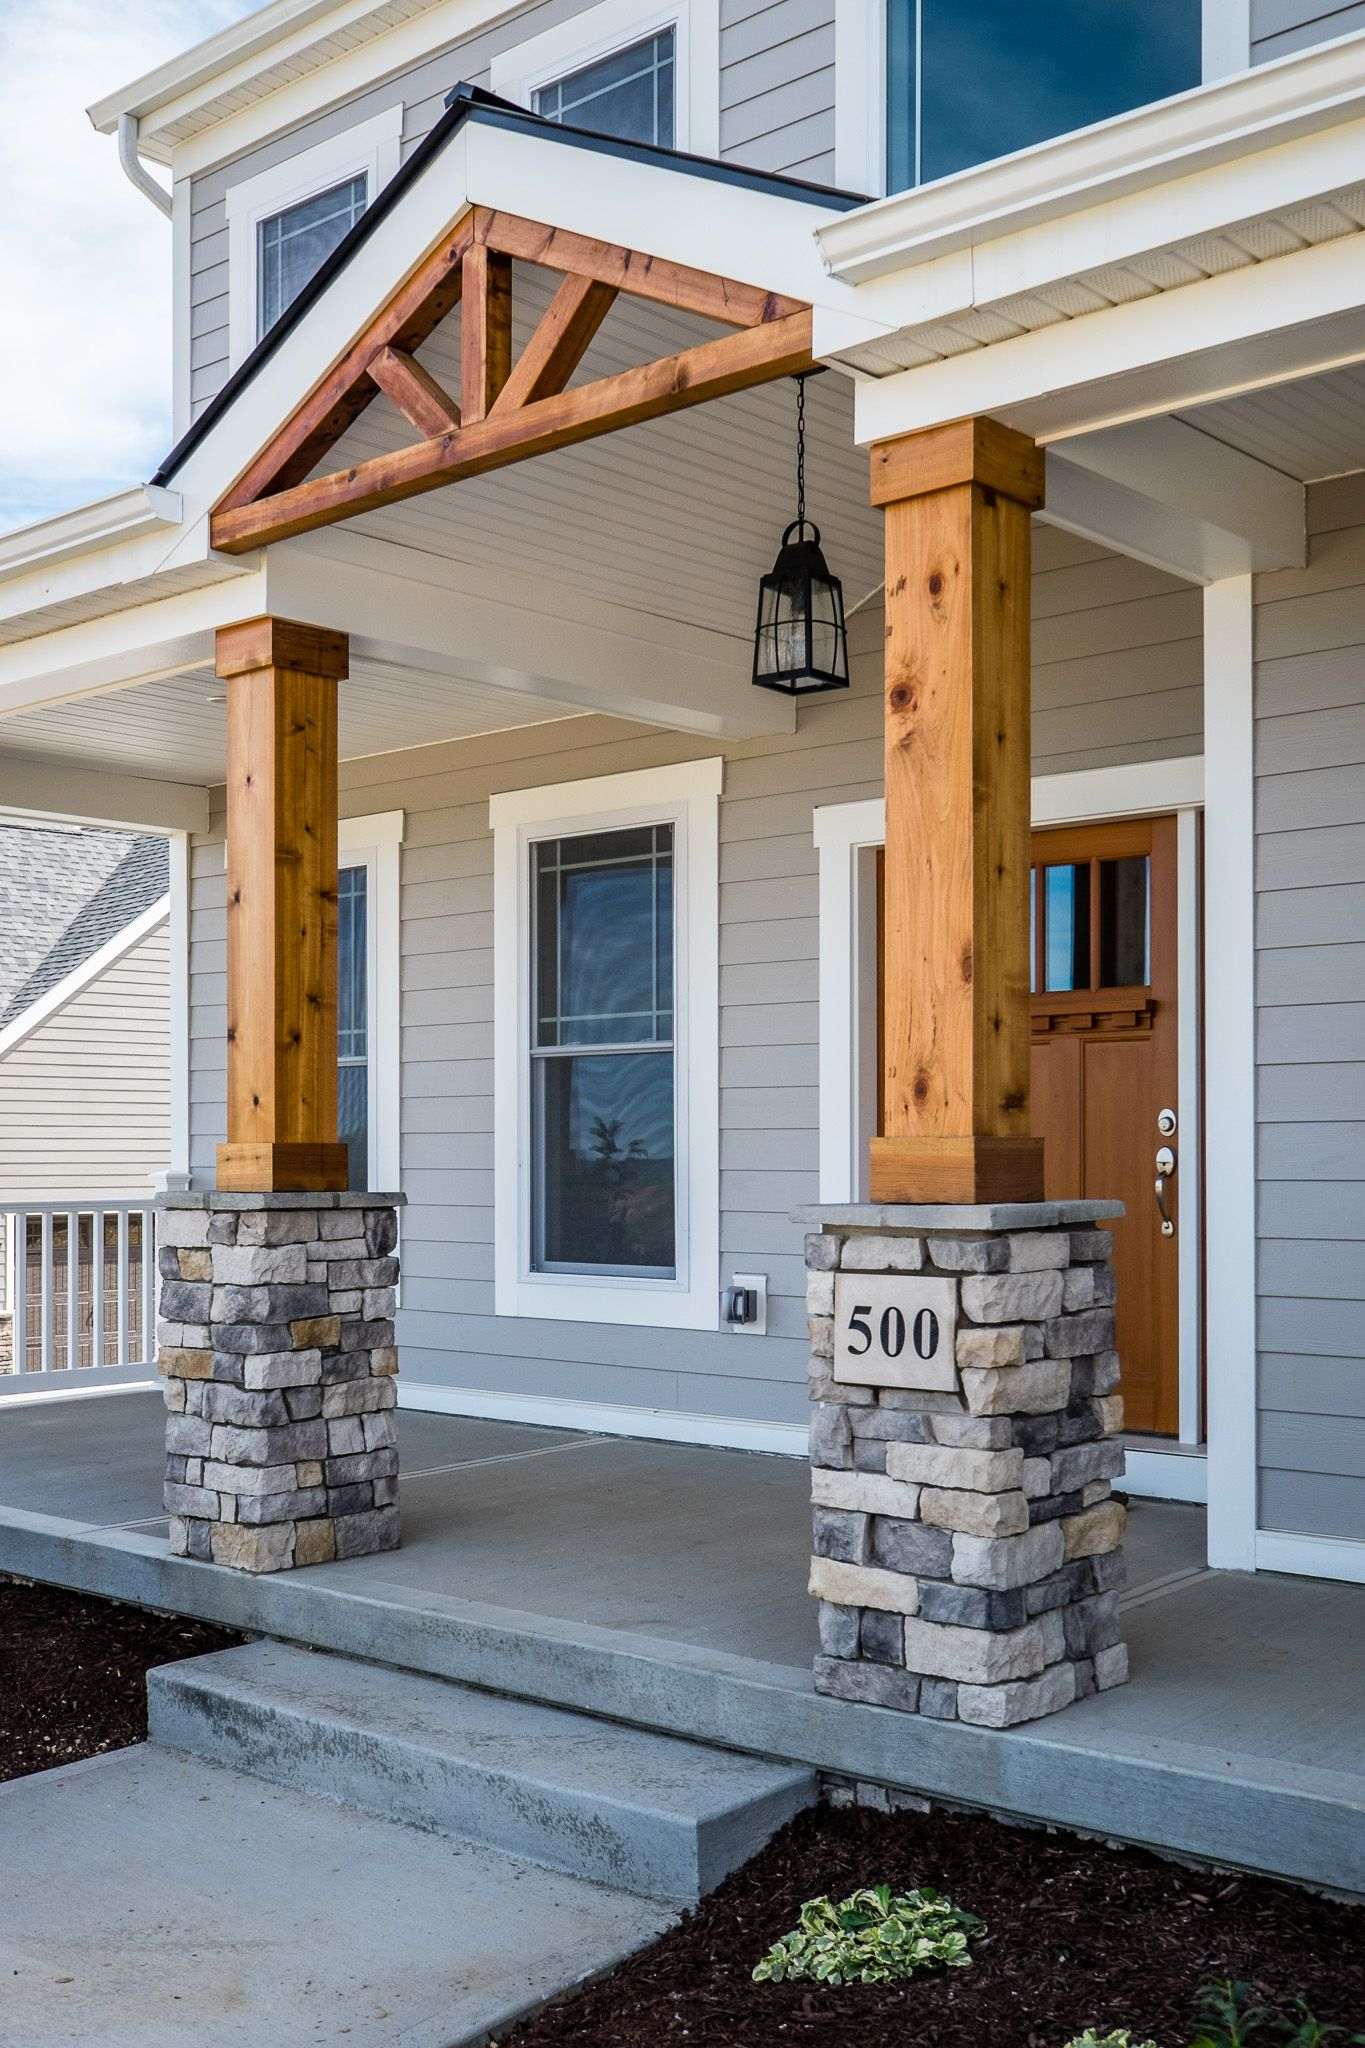 Gorgeous Front Porch! Wood and Stone Columns! | Home Exteriors in 2019 | Farmhouse front porches ...